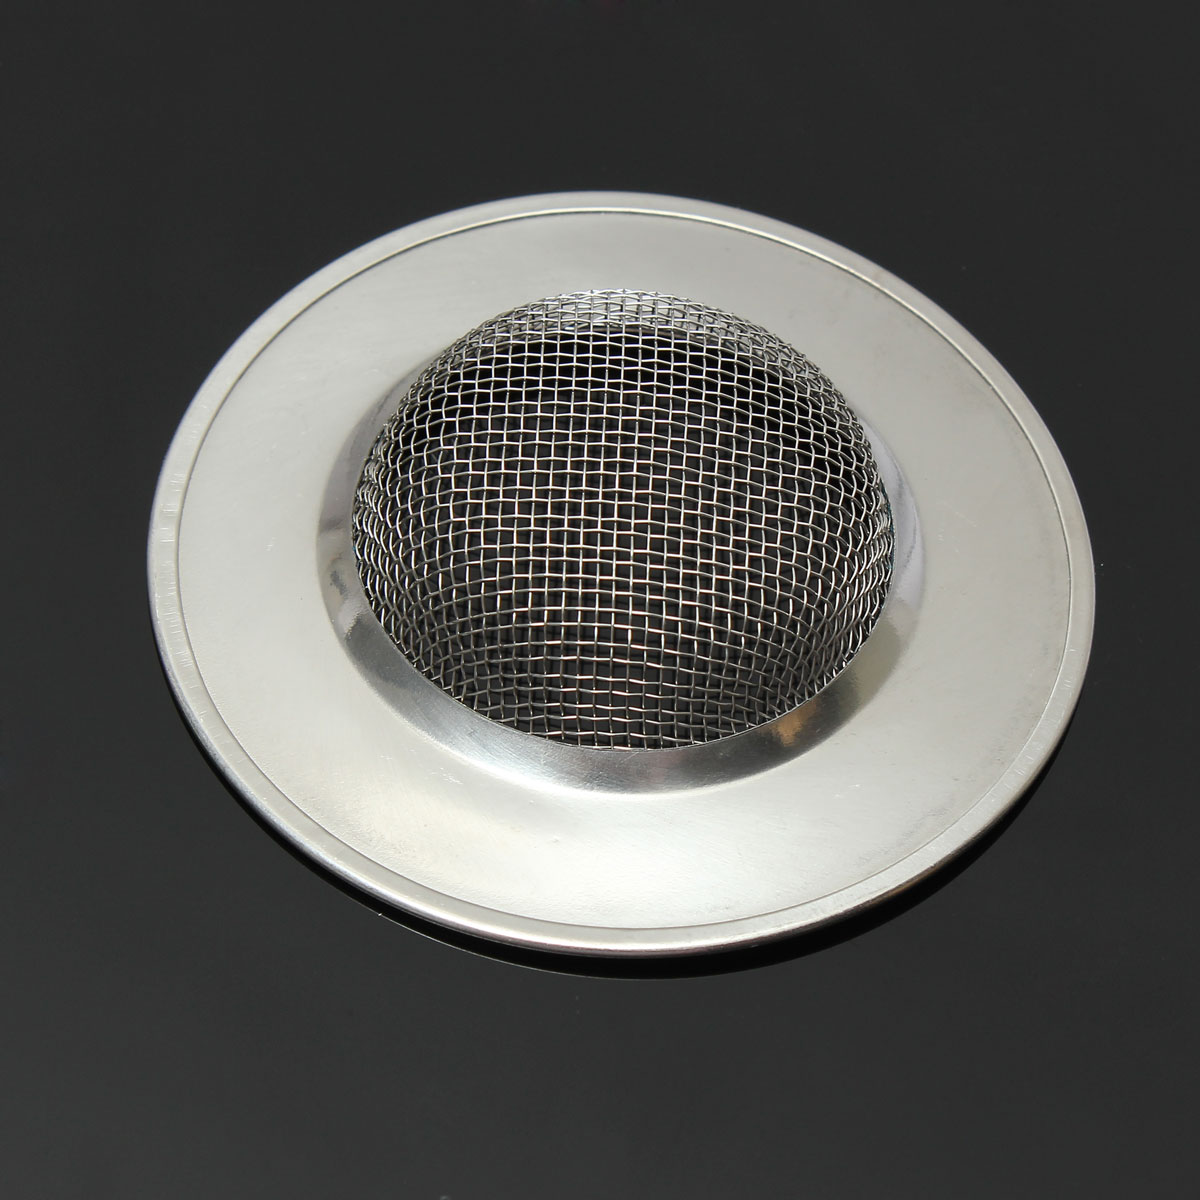 kitchen bath basin sink drain strainer waste hair mesh filter stopper